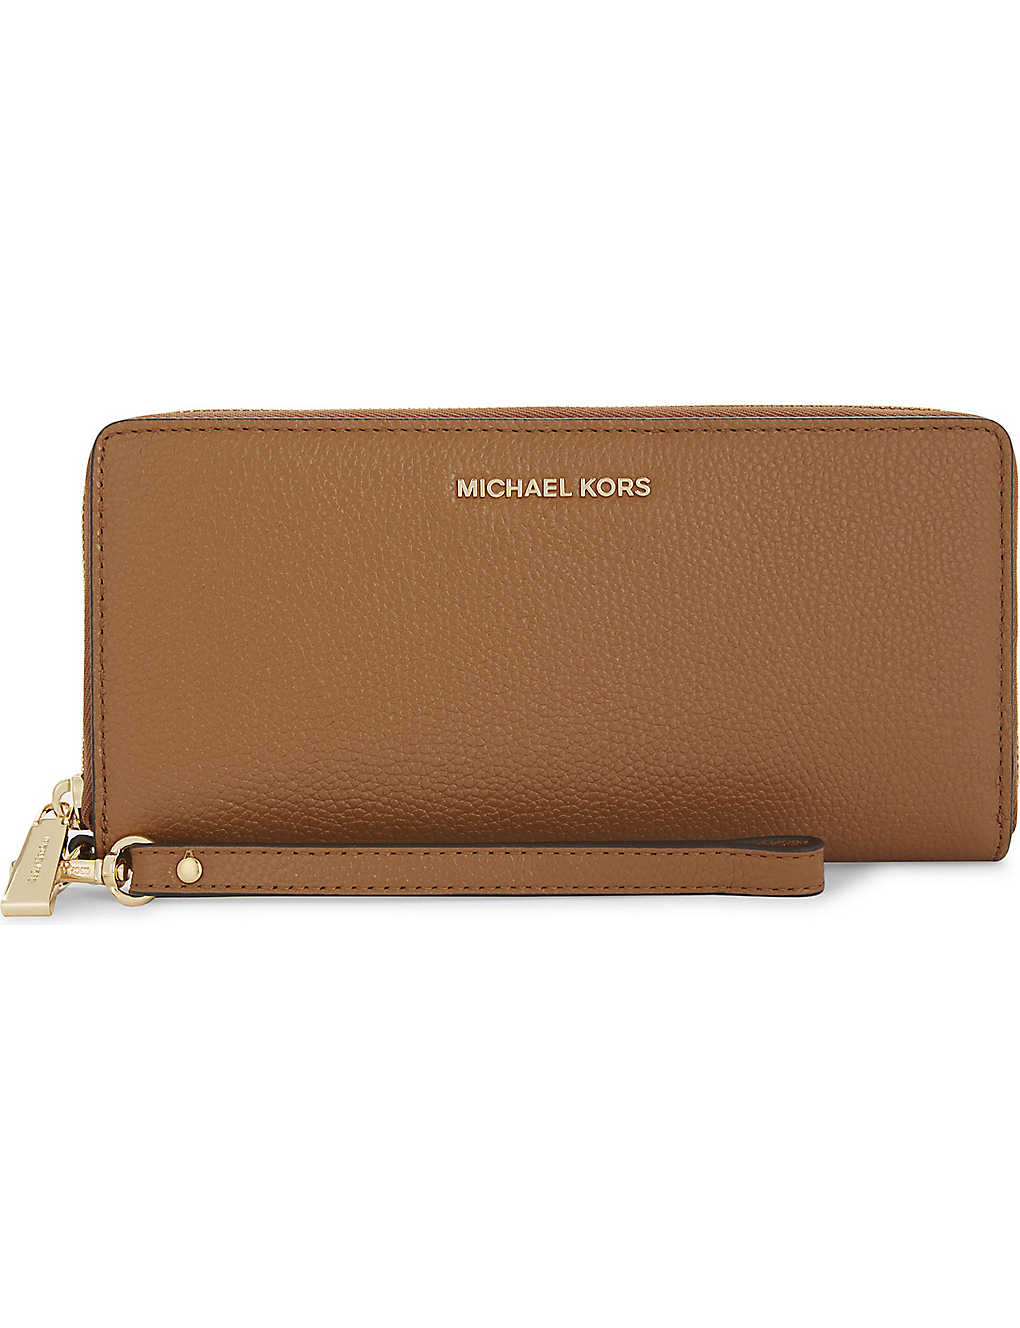 6bdfc7ee6374ce MICHAEL MICHAEL KORS - Money Pieces leather continental wallet ...